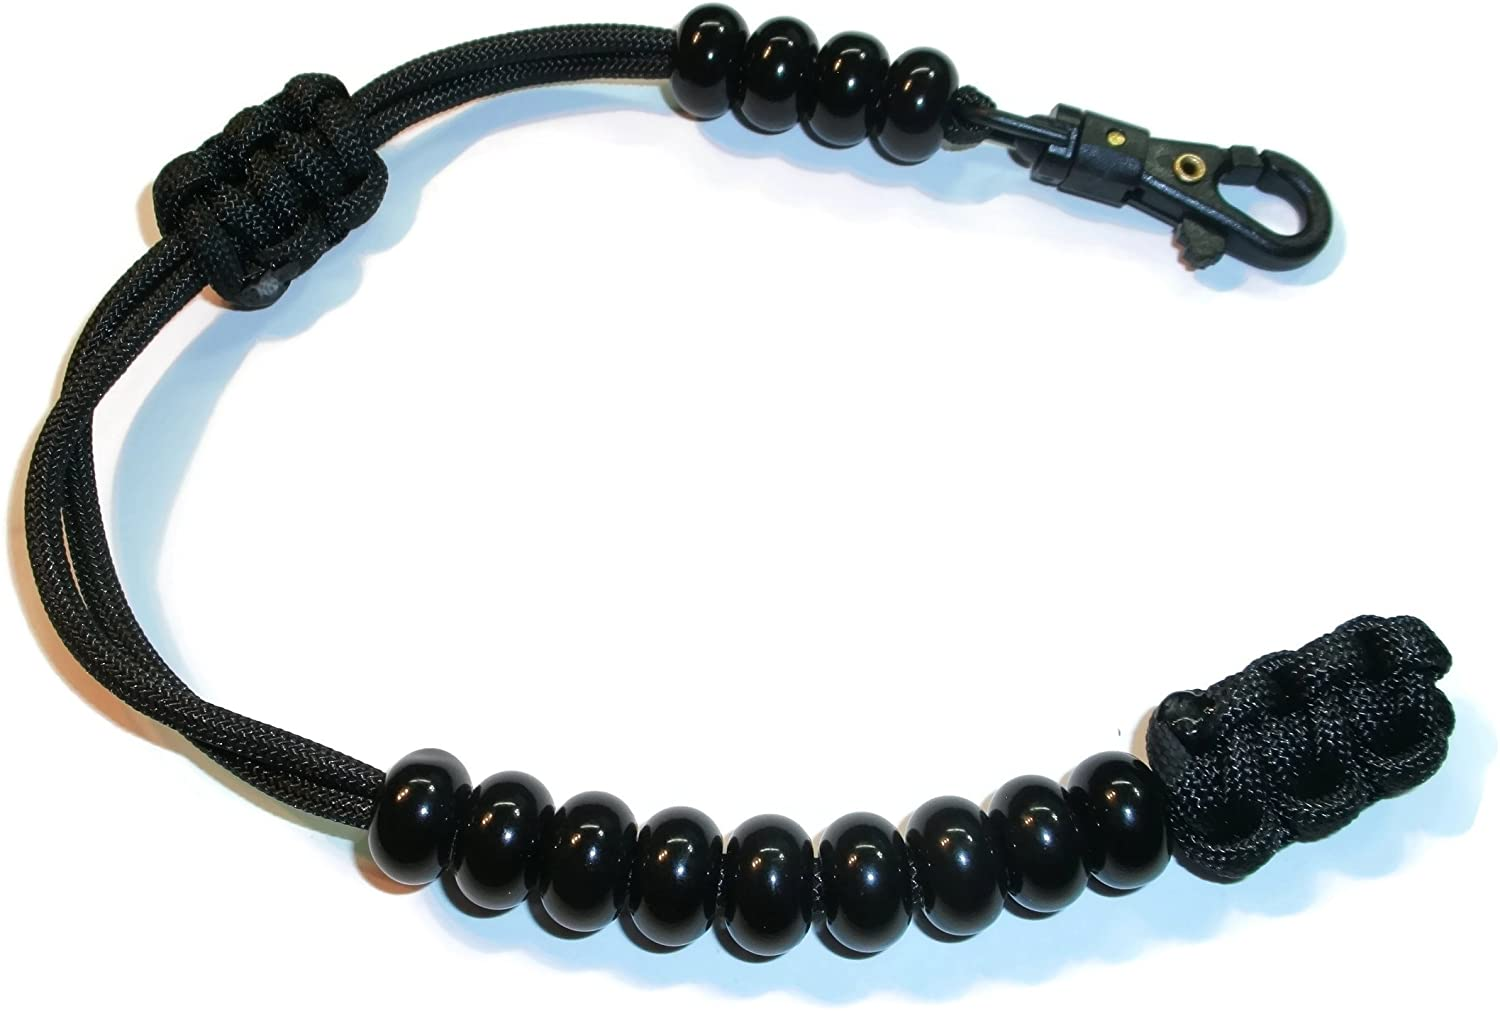 RedVex Ranger Style Cobra Pace Counter Beads Paracord/Survival 13